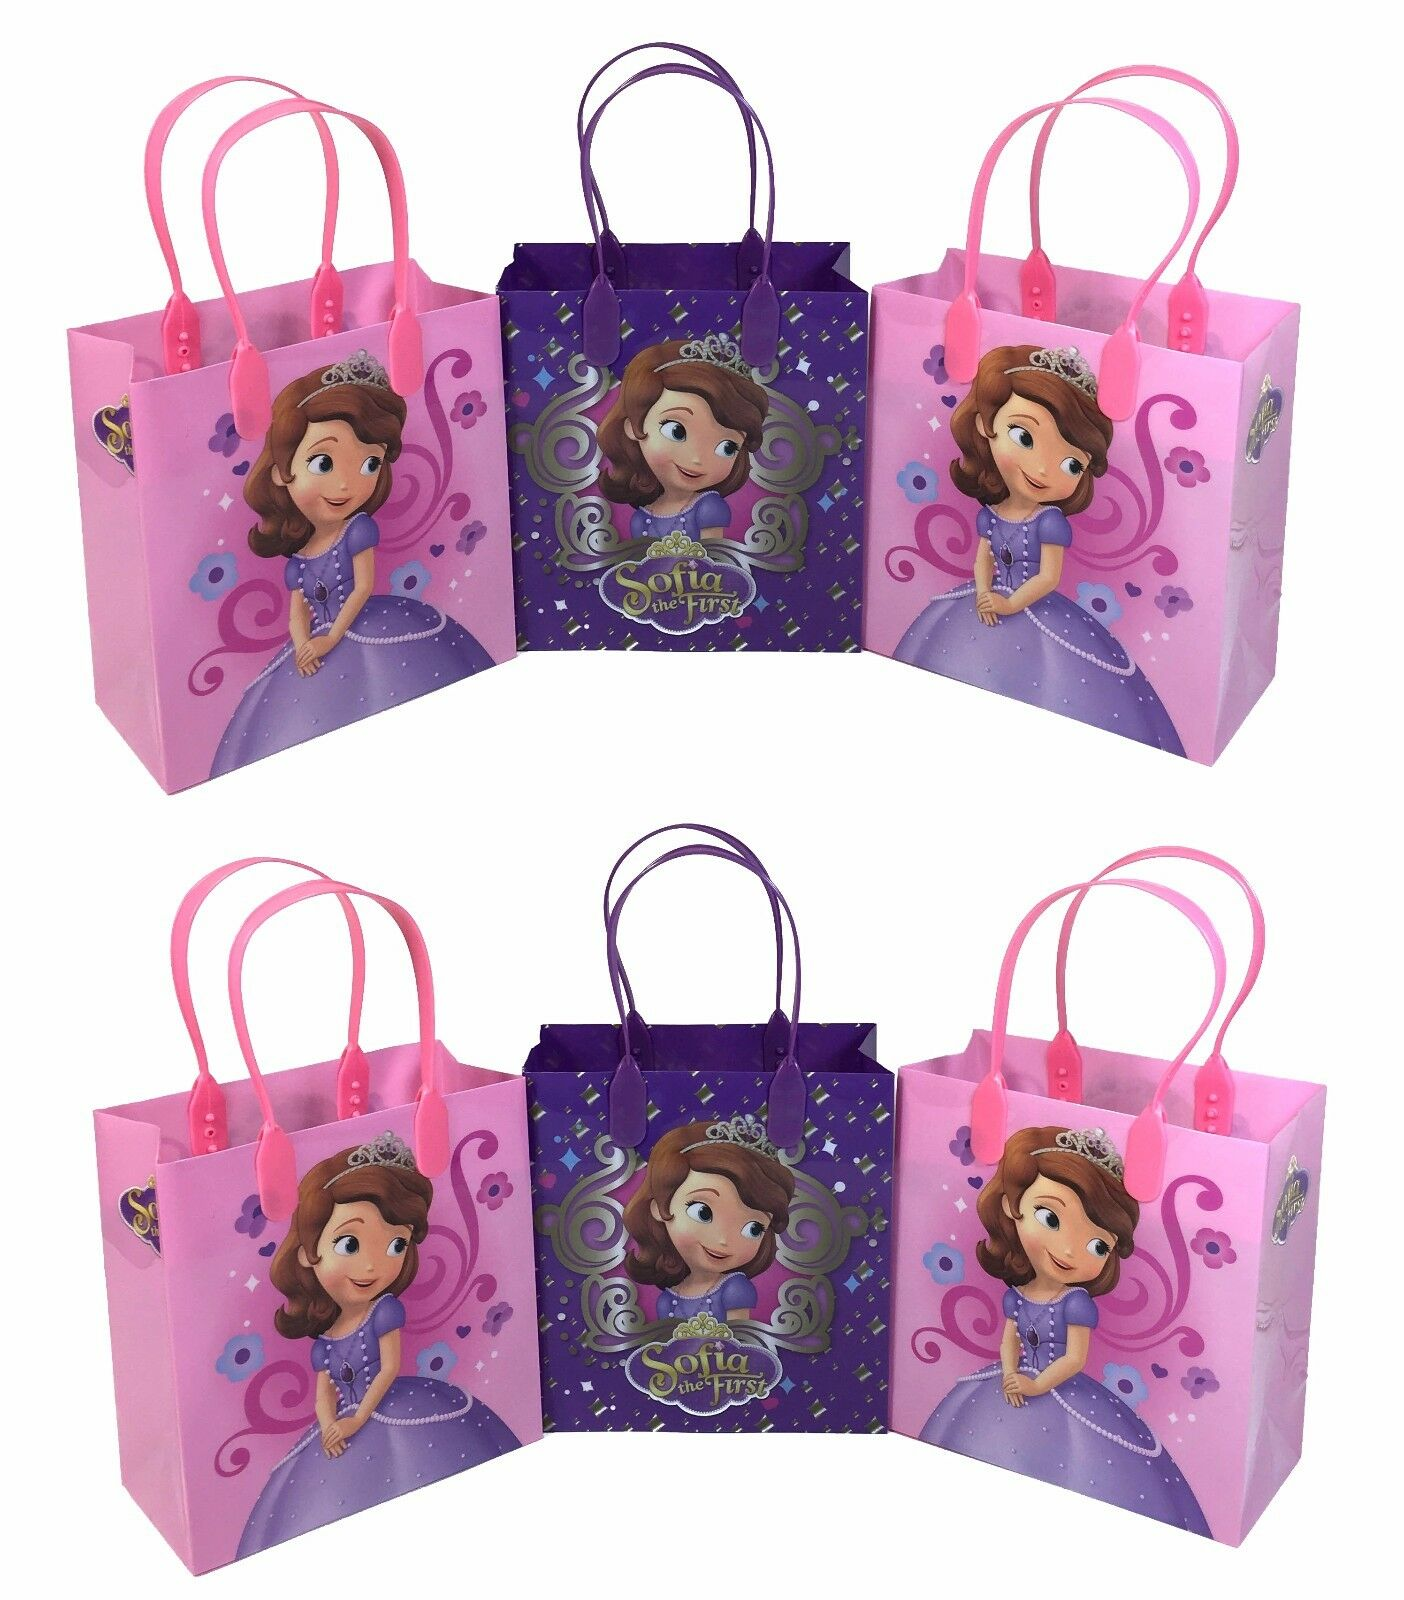 12pc Disney Princess Sofia The First Goody Bags Party